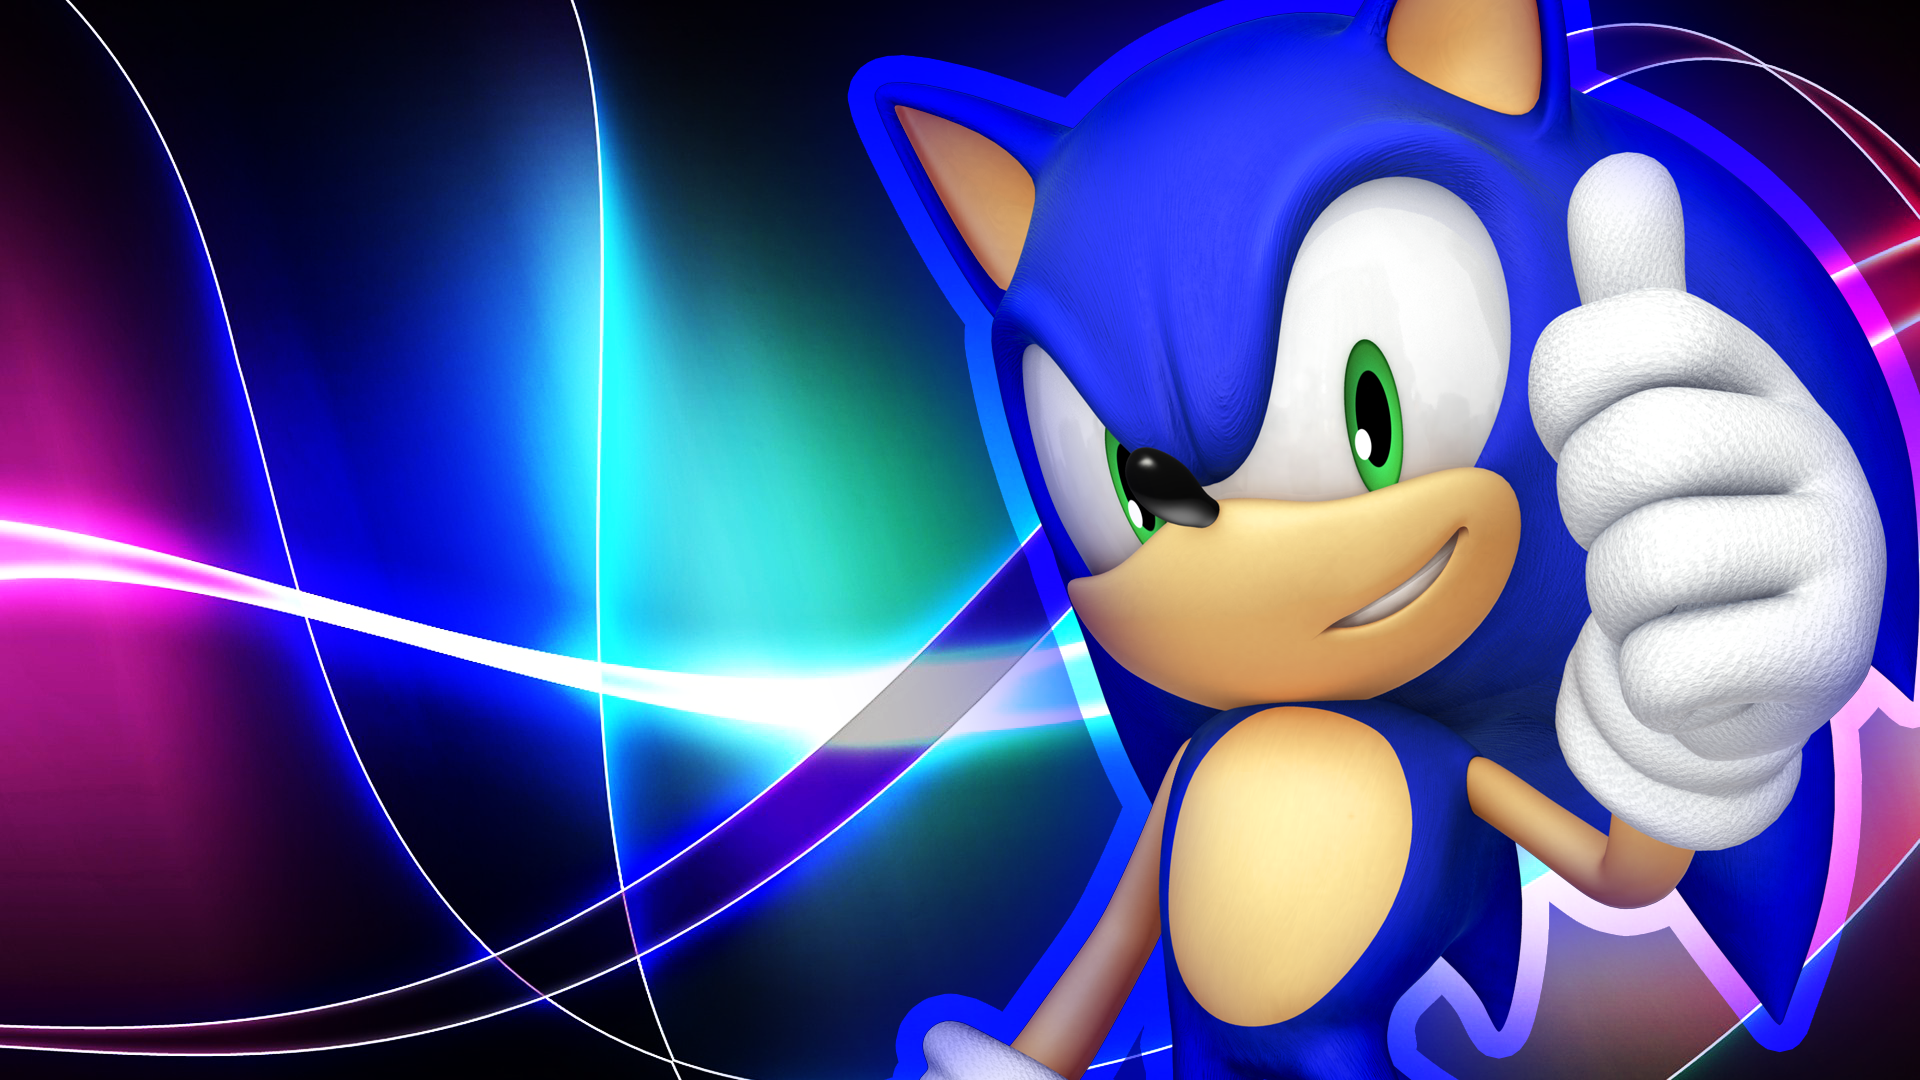 Sonic Wallpaper Hd For Desktop Download Free Festas De Aniversario Do Sonic Aniversario Do Sonic Festa Sonic